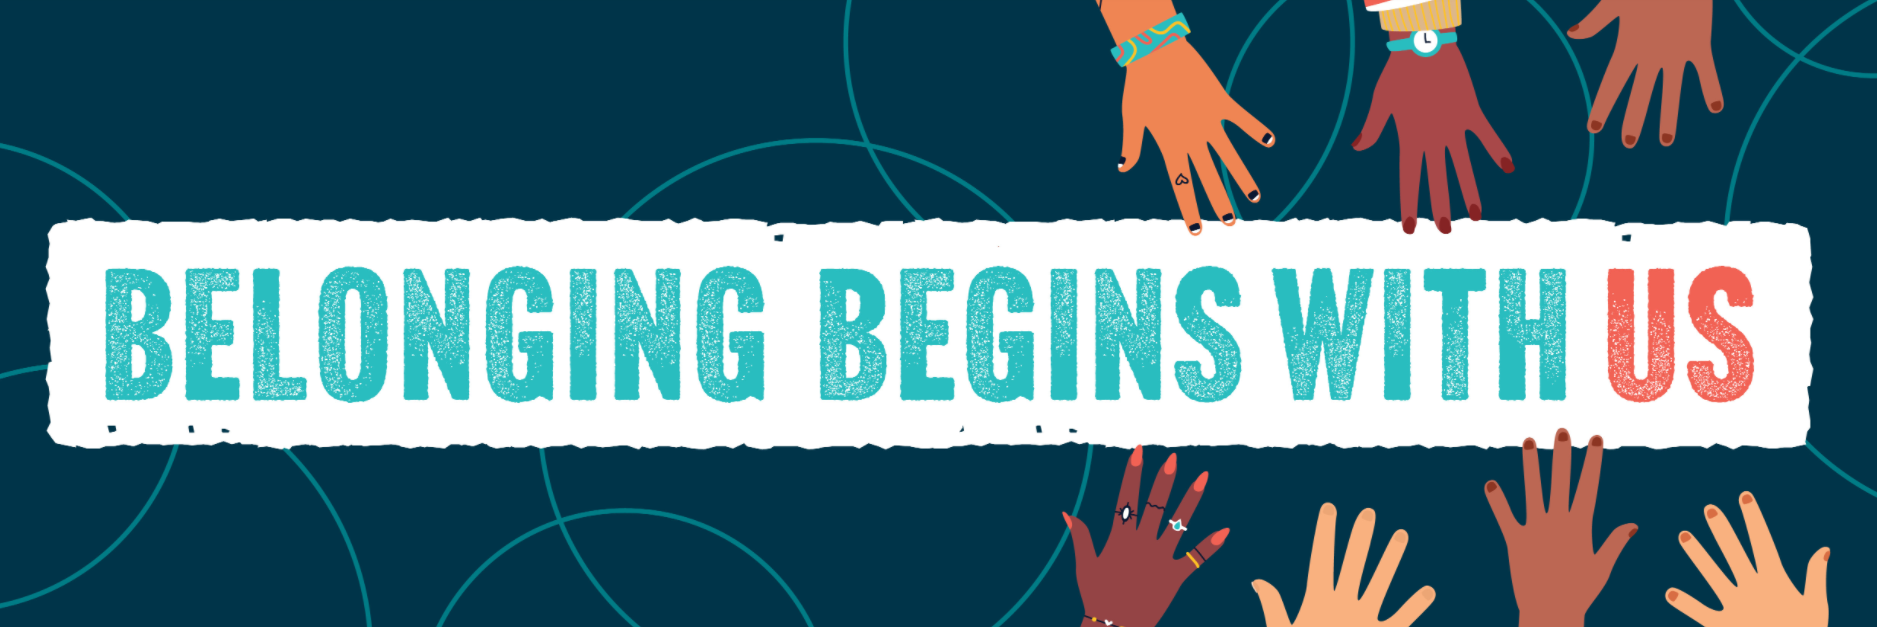 Belonging begins with us. Features illustrated hands reaching in, of many different skin tones.